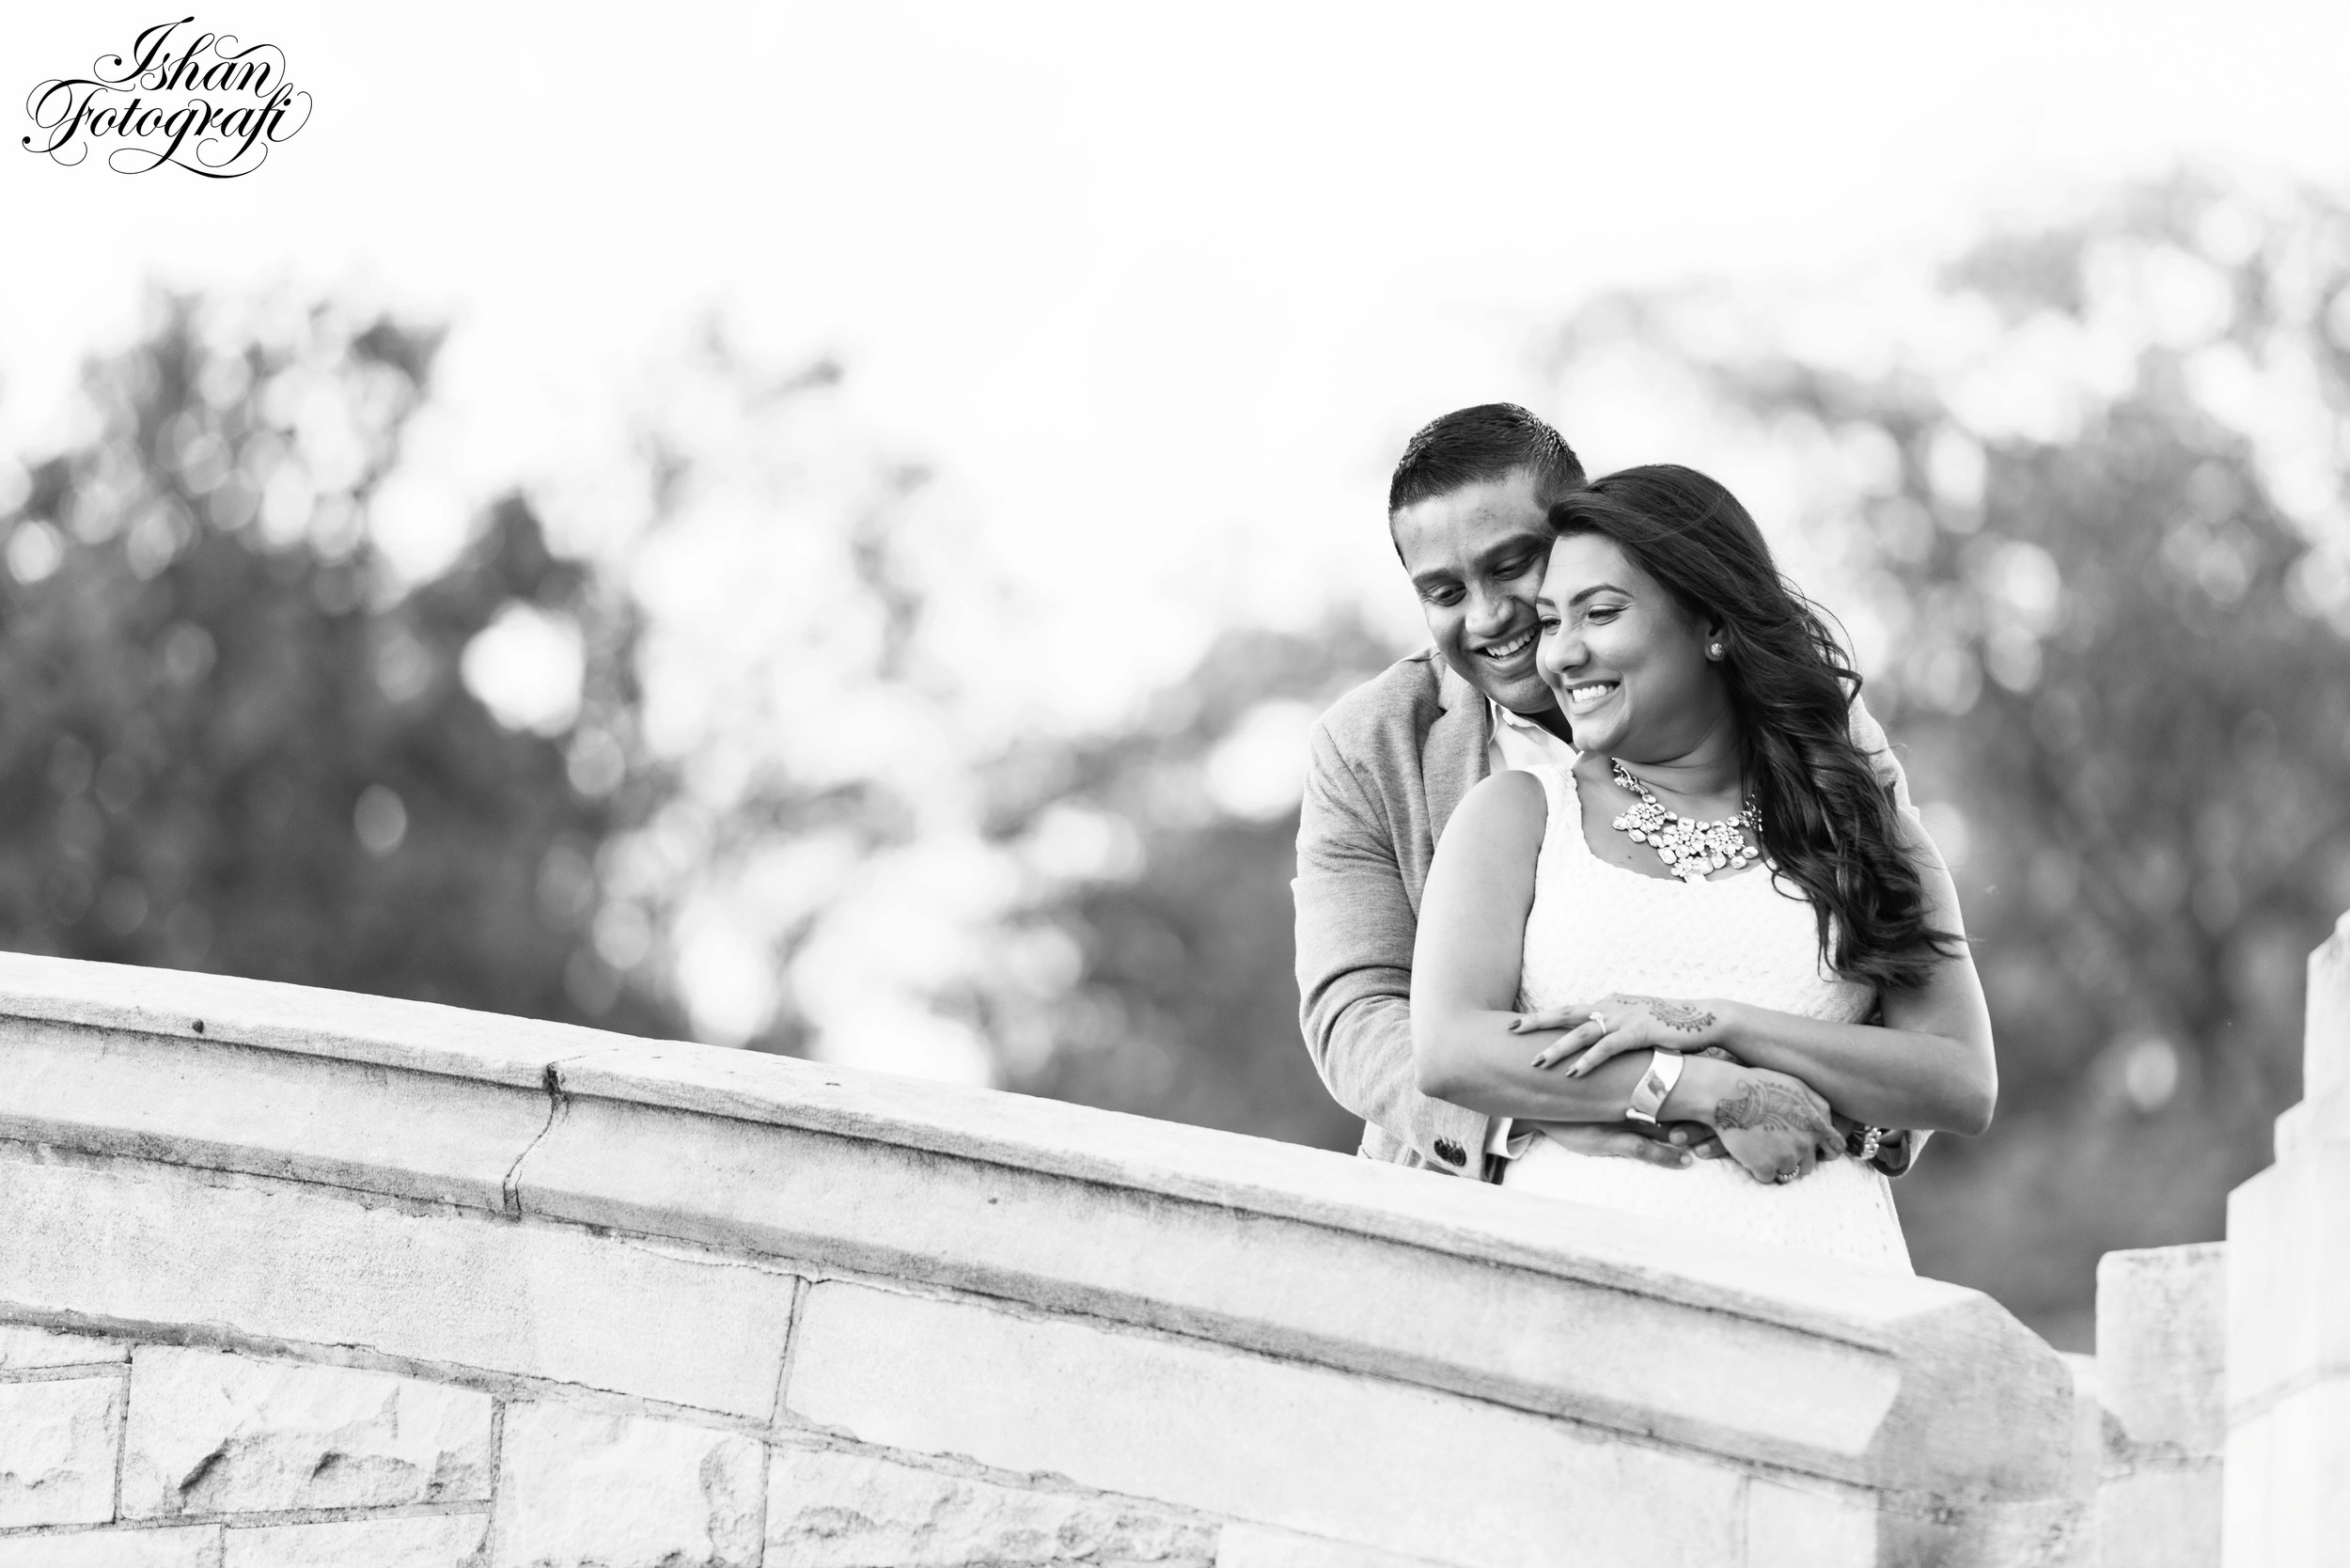 Fall engagement shoot in Verona Park, New Jersey.